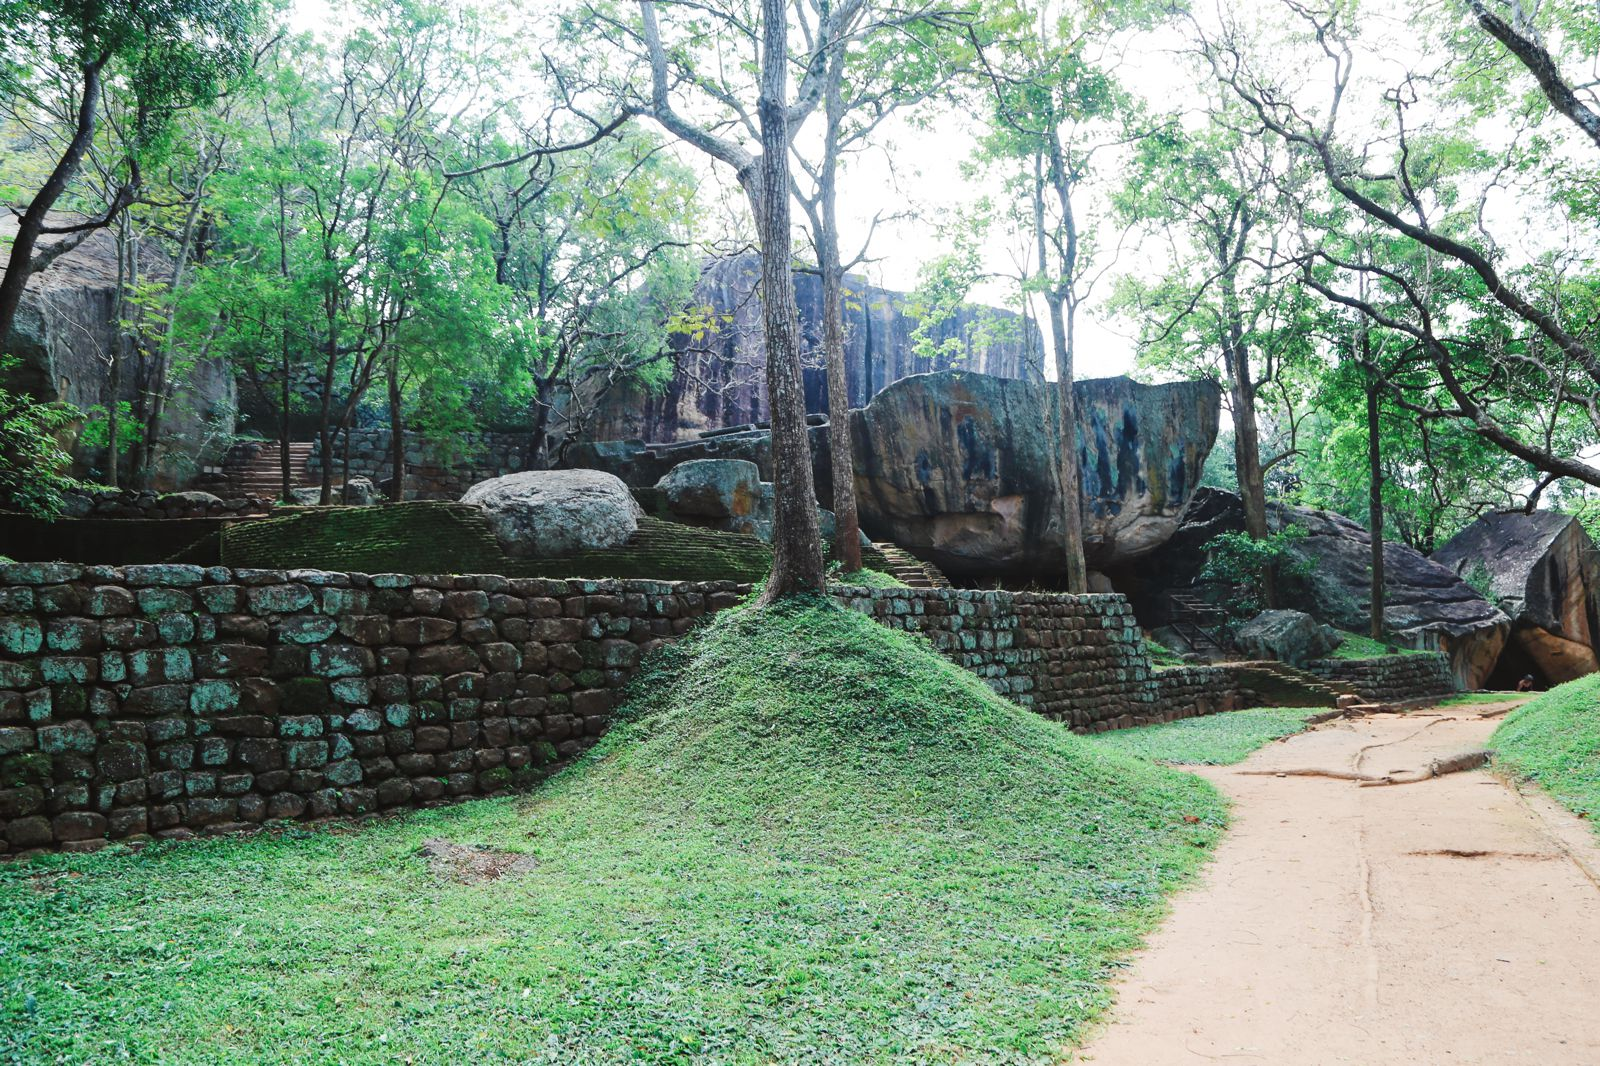 The Complete Guide To Climbing Sri Lanka's UNESCO World Heritage Site Of Sigiriya - Lion Rock (16)